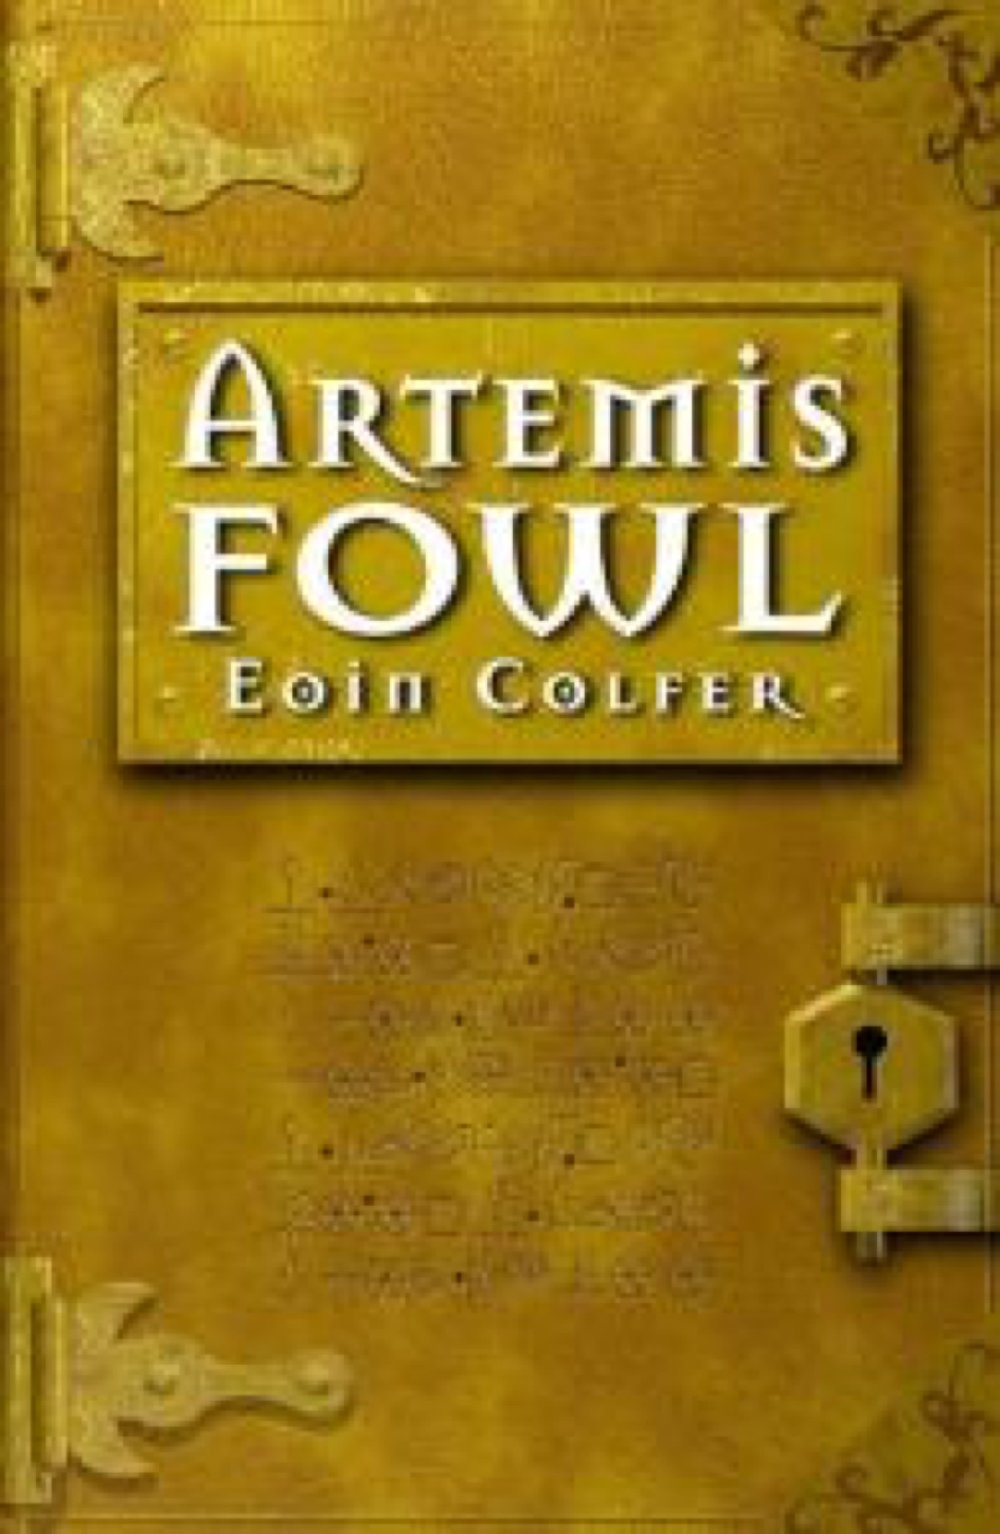 Artemis_Fowl_first_edition_cover (1920).jpg